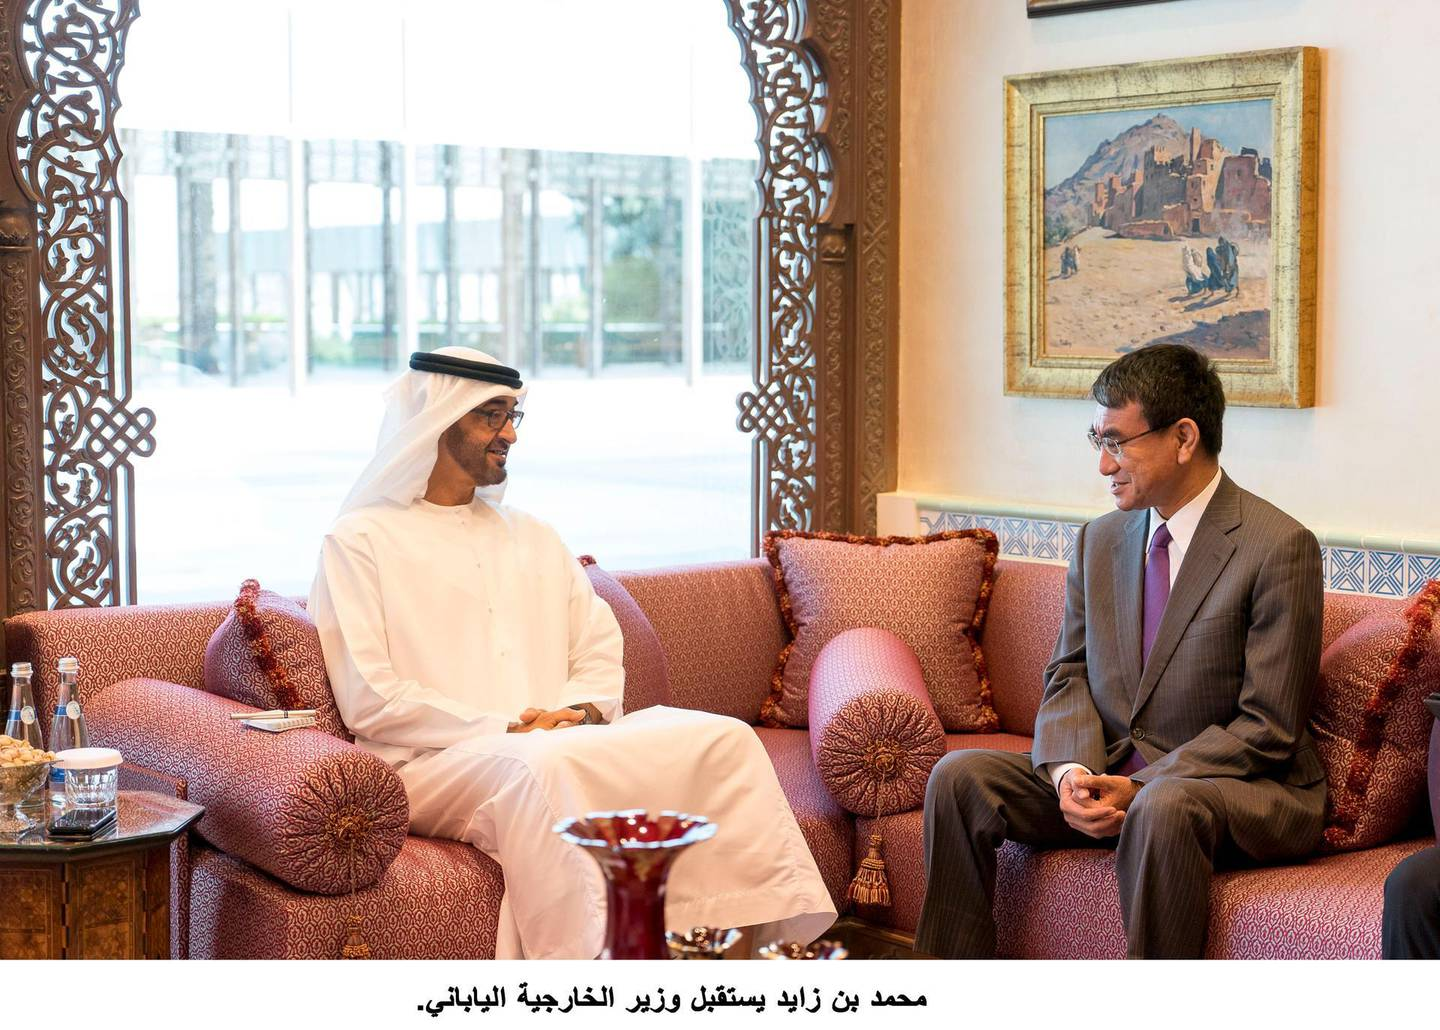 ABU DHABI, UNITED ARAB EMIRATES - December 10, 2017: HH Sheikh Mohamed bin Zayed Al Nahyan Crown Prince of Abu Dhabi Deputy Supreme Commander of the UAE Armed Forces (L), meets with Taro Kono, Minister of Foreign Affairs of Japan (R), at the Sea Palace.( Rashed Al Mansoori / Crown Prince Court - Abu Dhabi )---